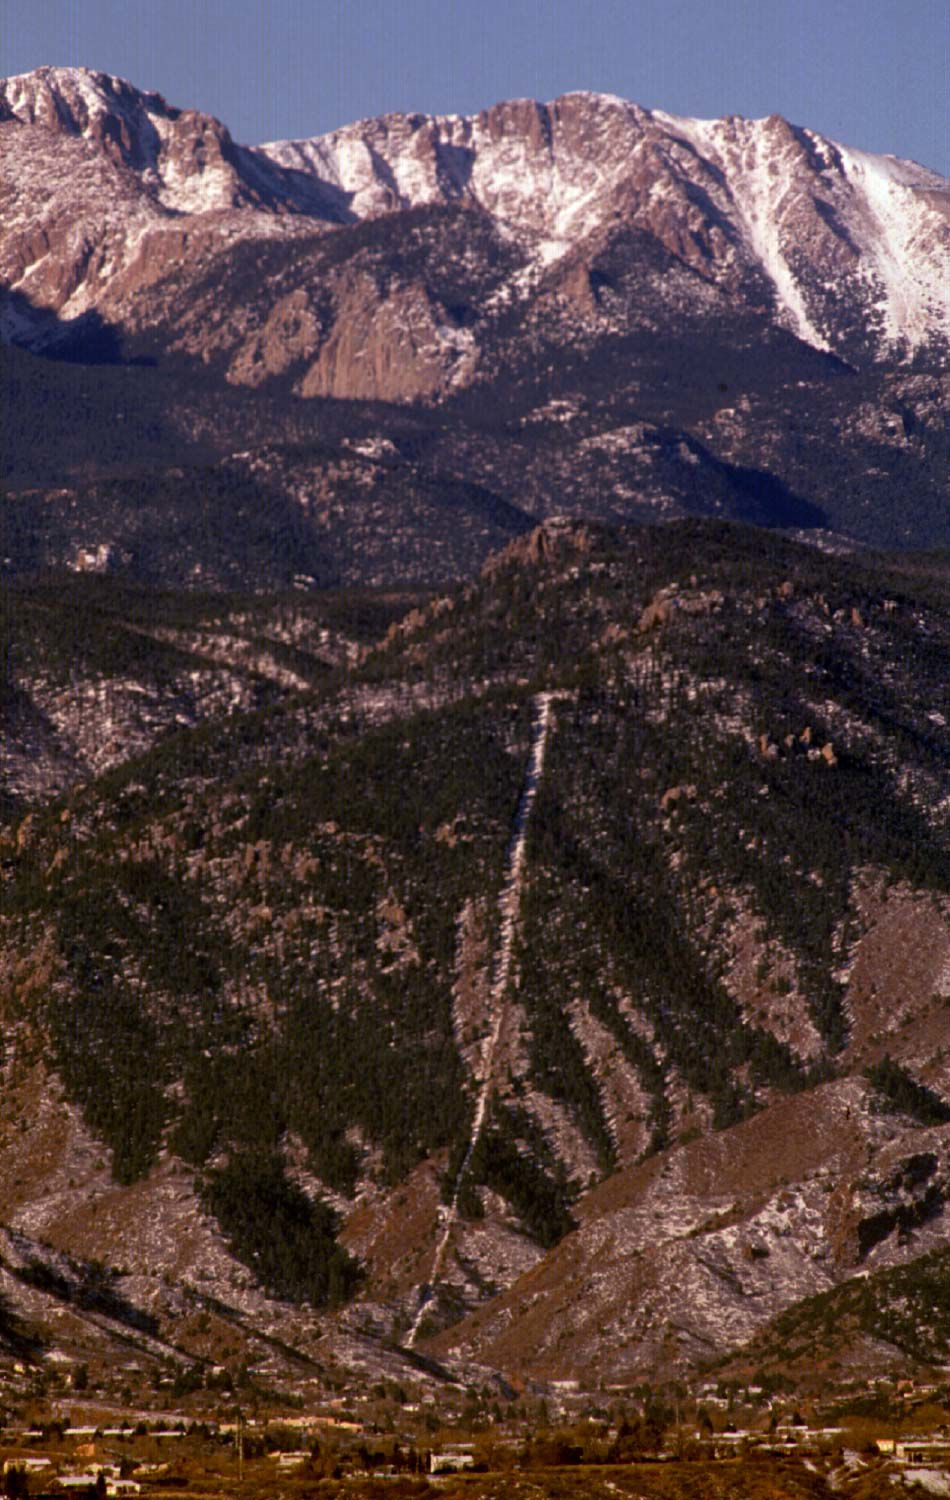 Scar left from the old Manitou Incline is still visible. photo by stuart, 11/28/96